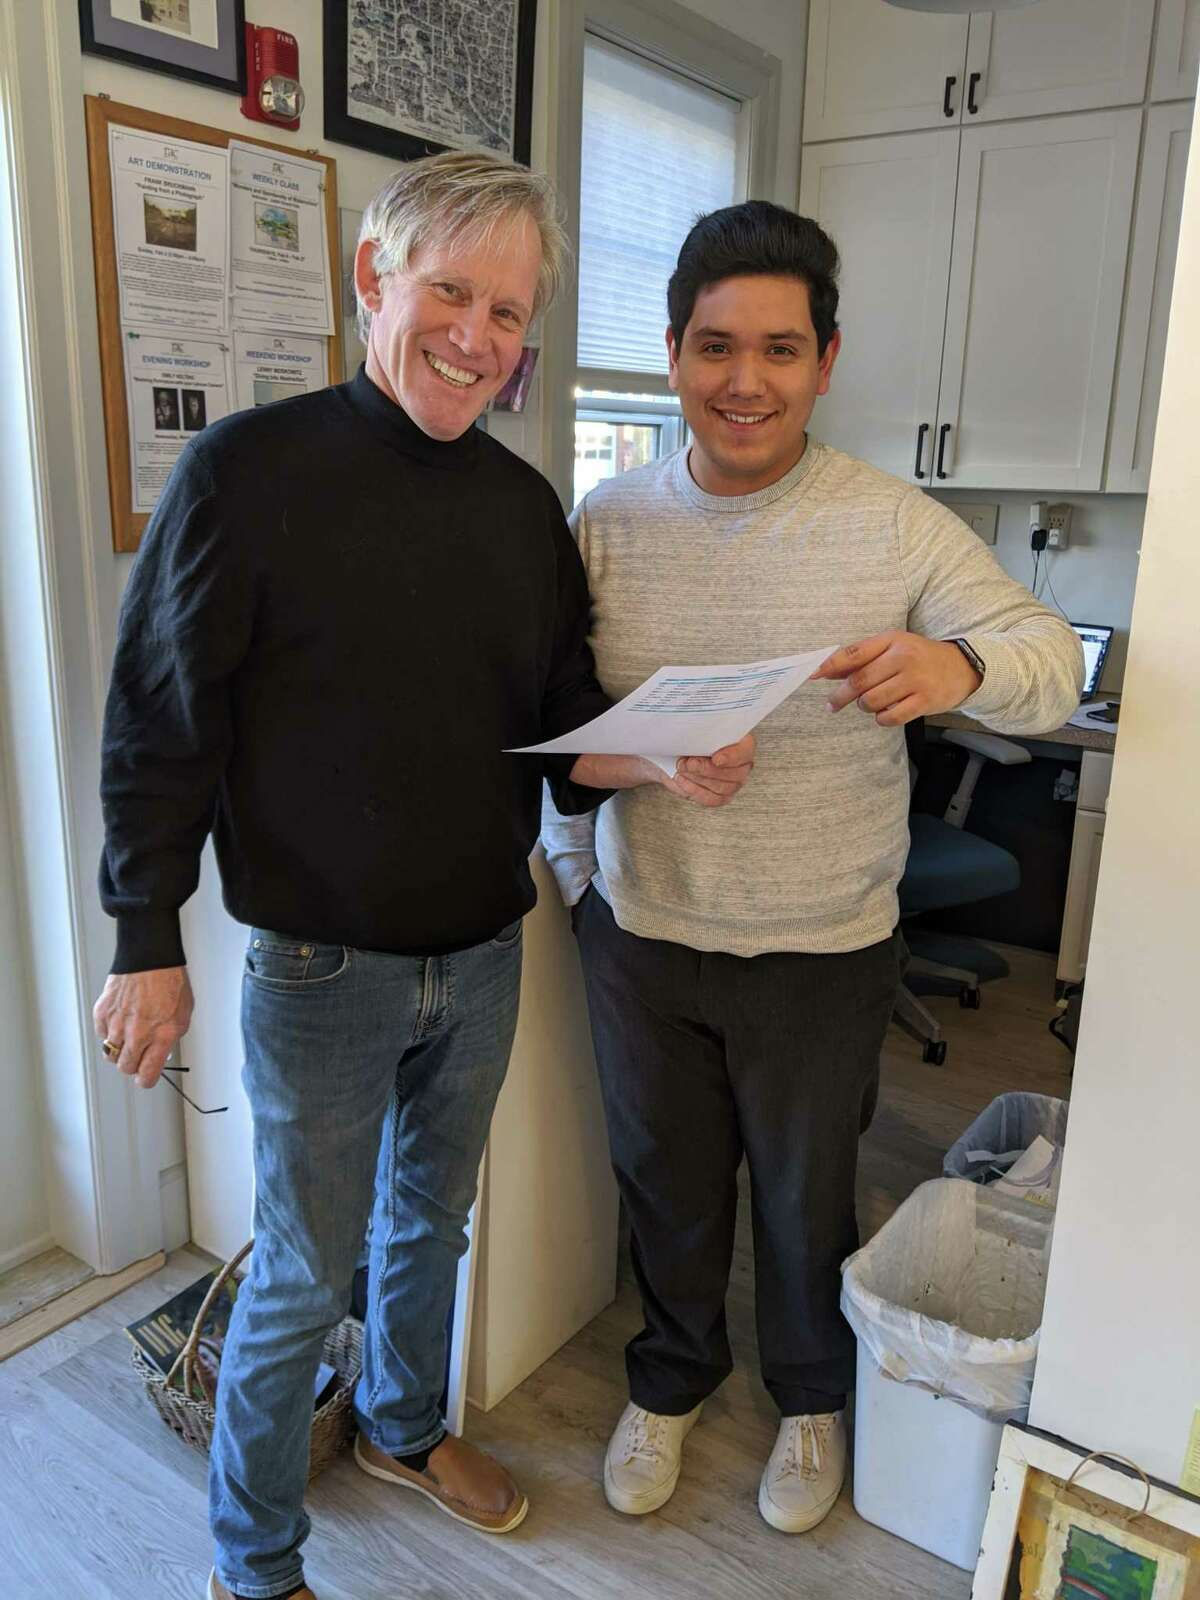 Show chairperson Michael Brennecke reviews the list of volunteers with RAC gallery manager Leo Gonzalez.